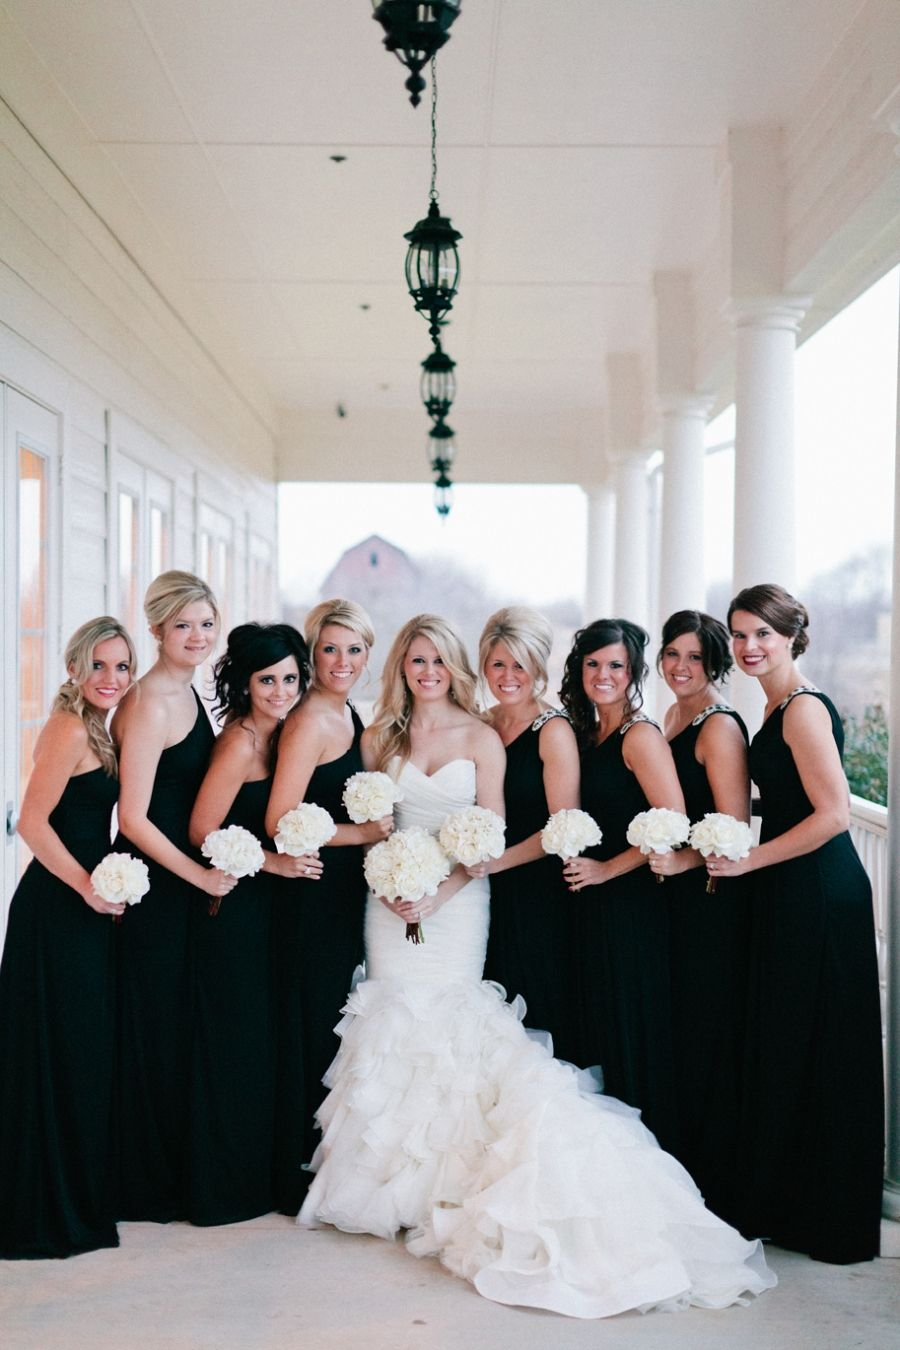 Black bridesmaids dresses dan and basmas wedding pinterest i love the black bridesmaid dresses and white wedding dress ill either have silver red or both incorporated in somehow red bouquet for the bride and ombrellifo Gallery